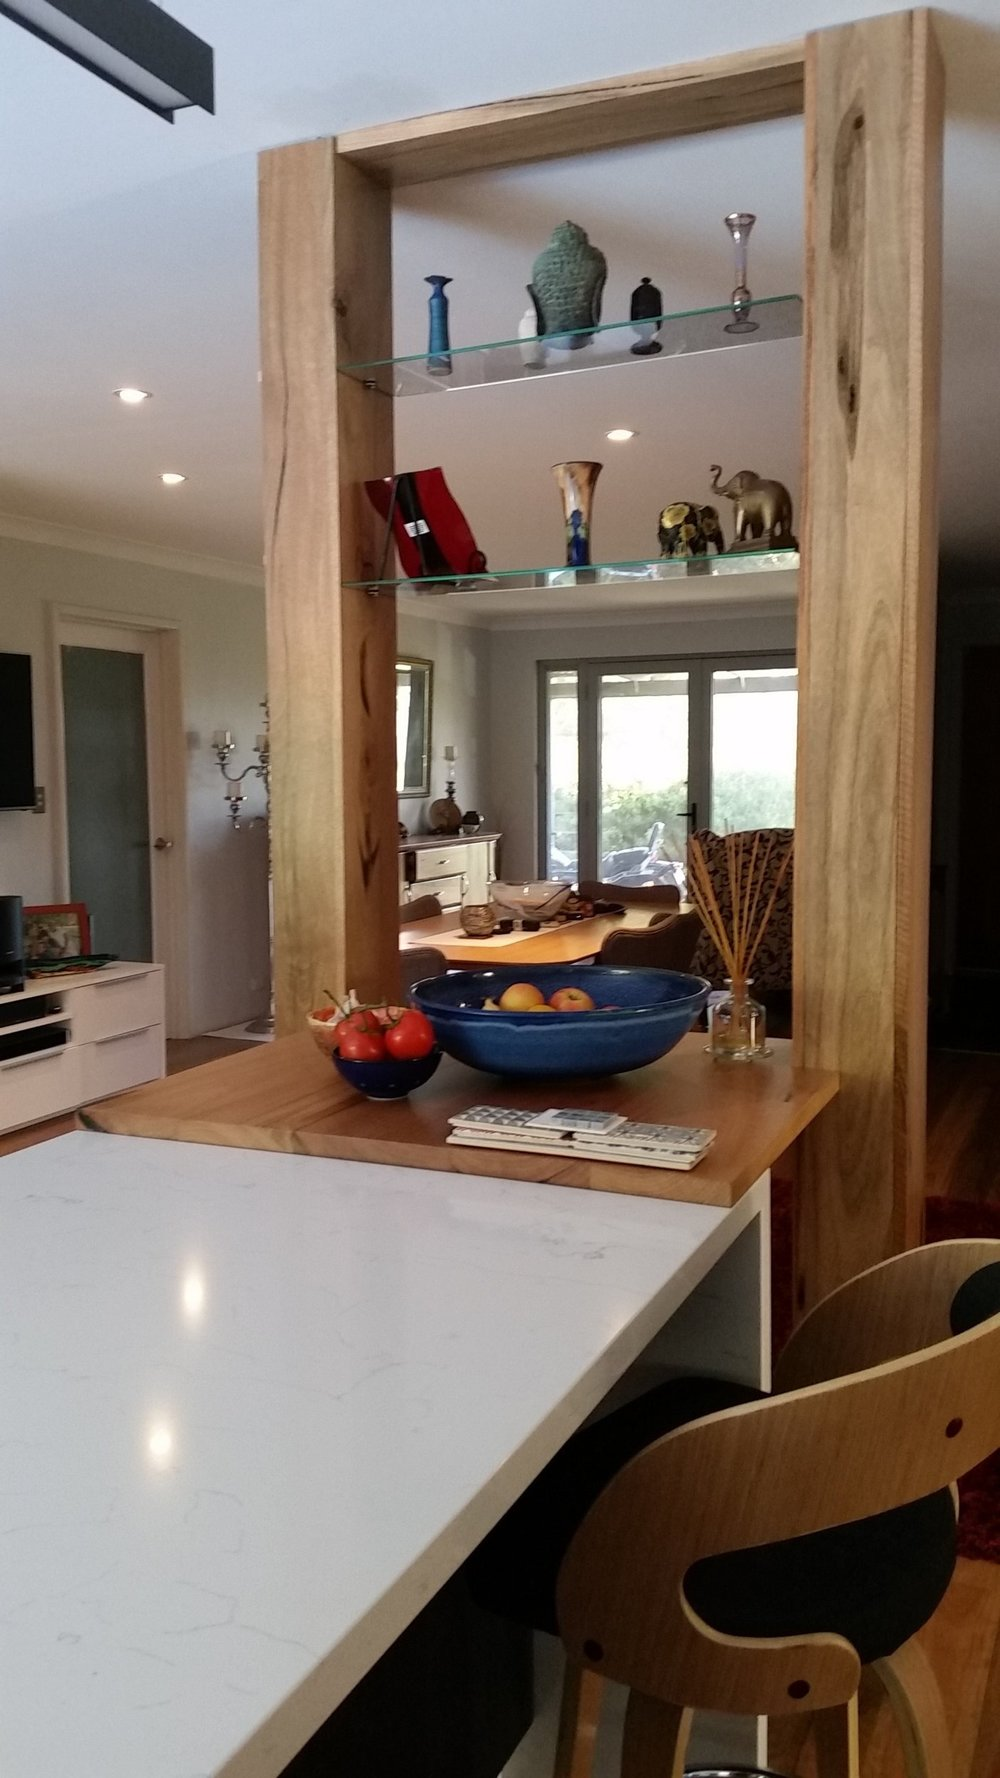 Marri Kitchen extension to hide support post